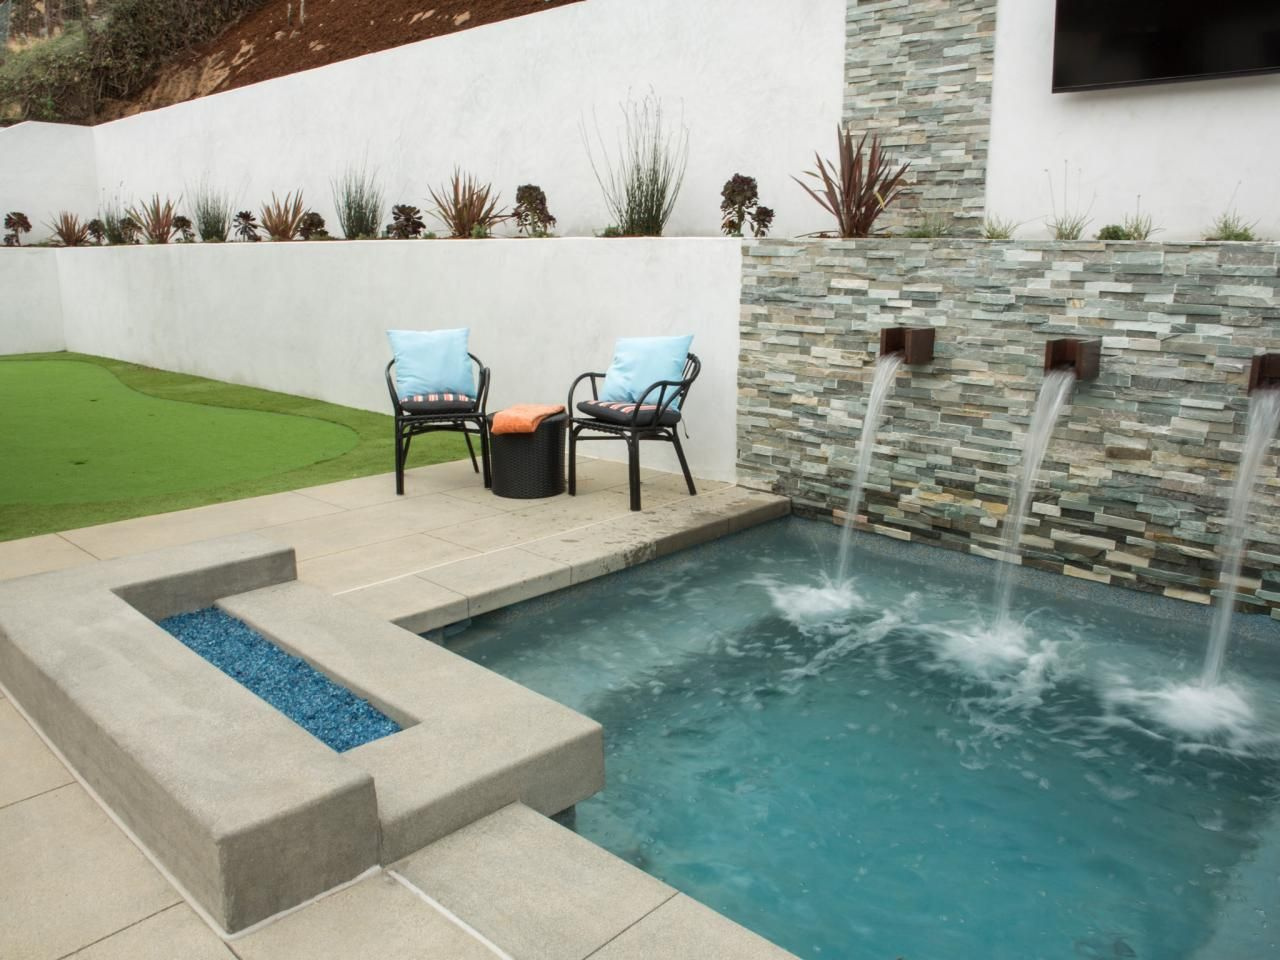 5 California Backyard Makeovers From 'Flip or Flop: Selling Summer'